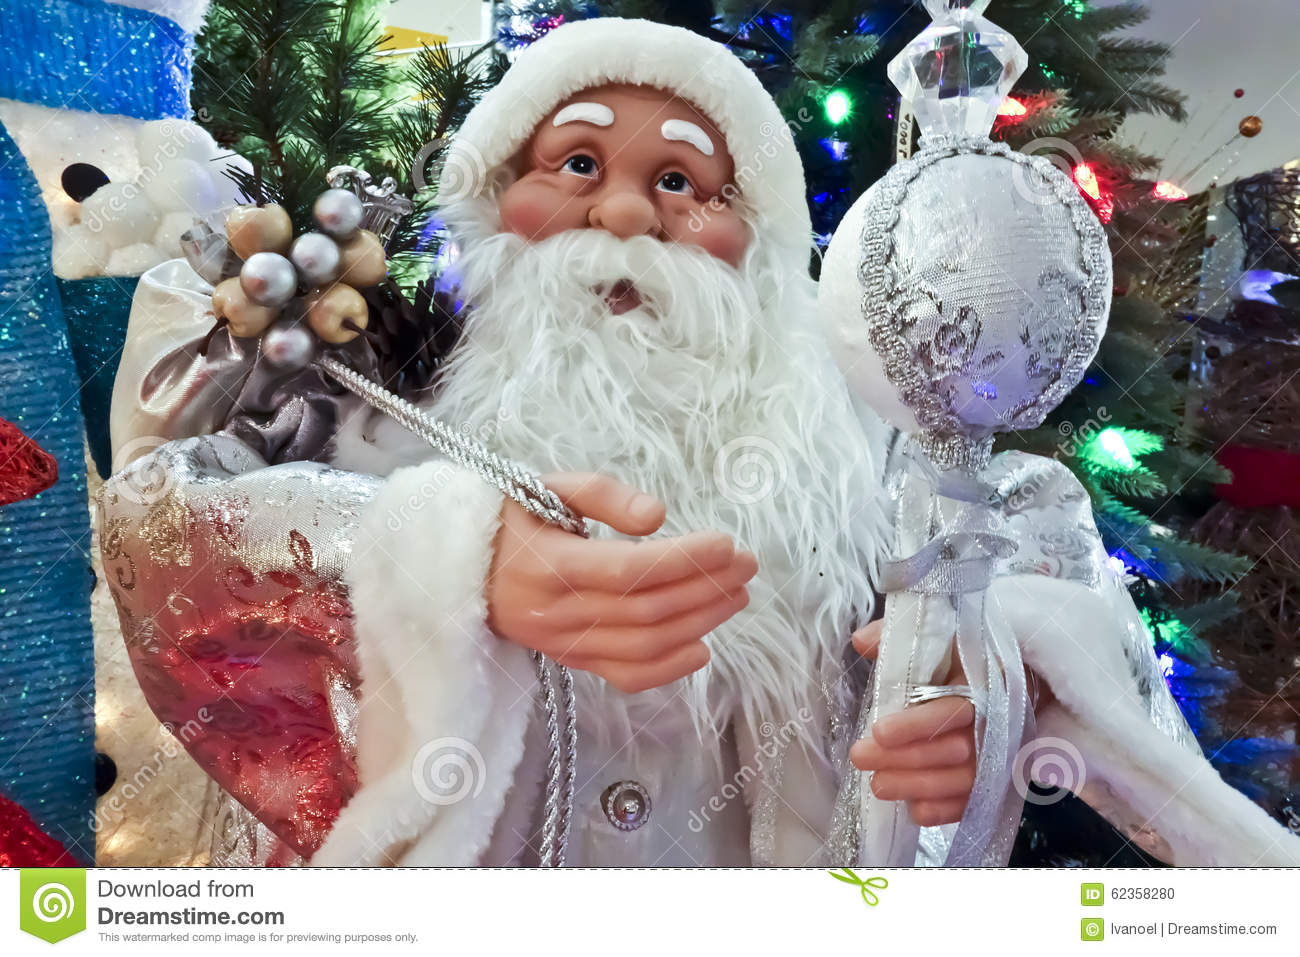 Sack Of Toys For Christmas : Santa claus with presents and toys stock photo image